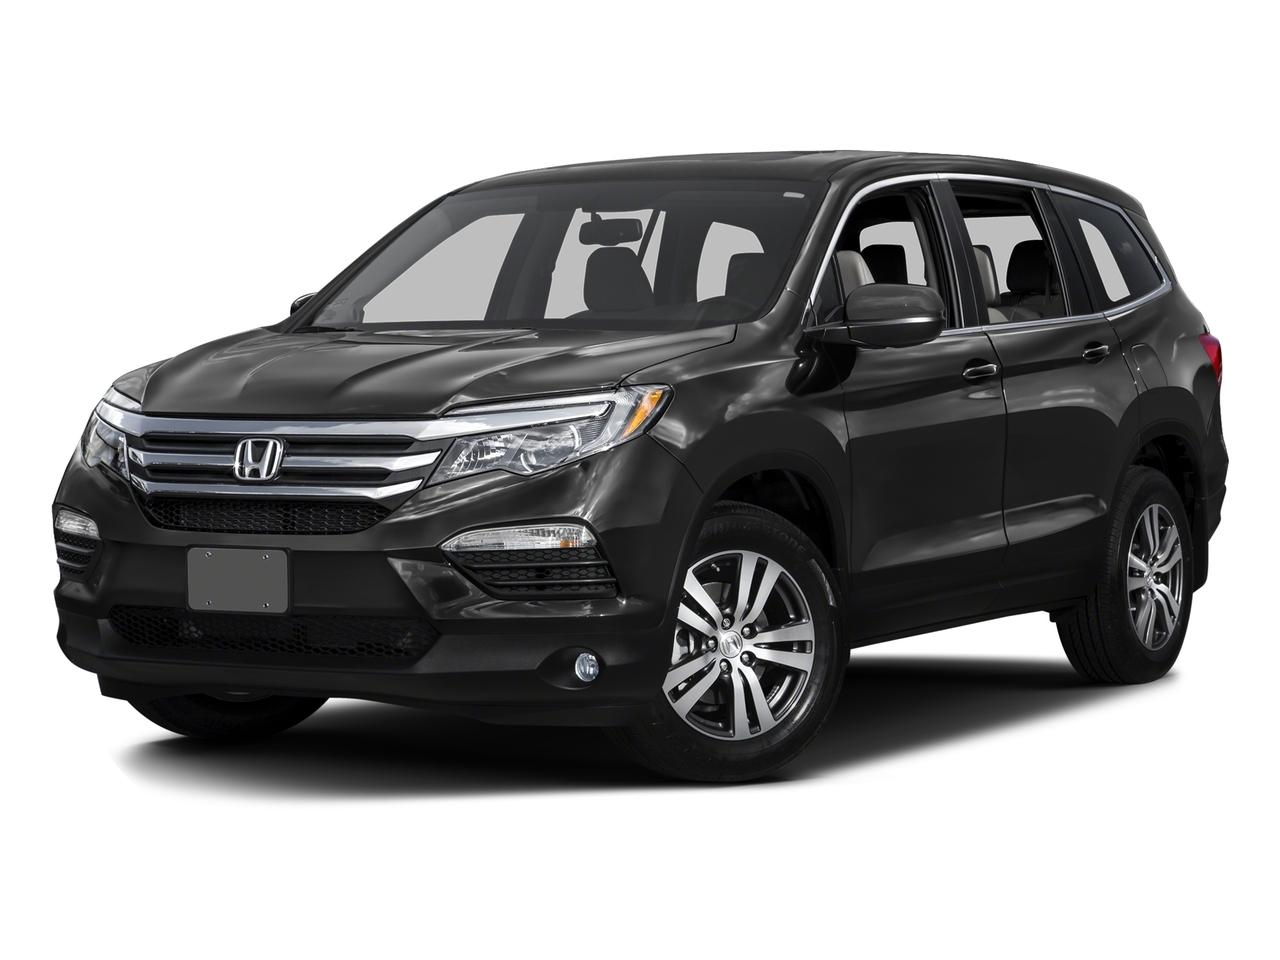 2016 Honda Pilot Vehicle Photo in Paramus, NJ 07652